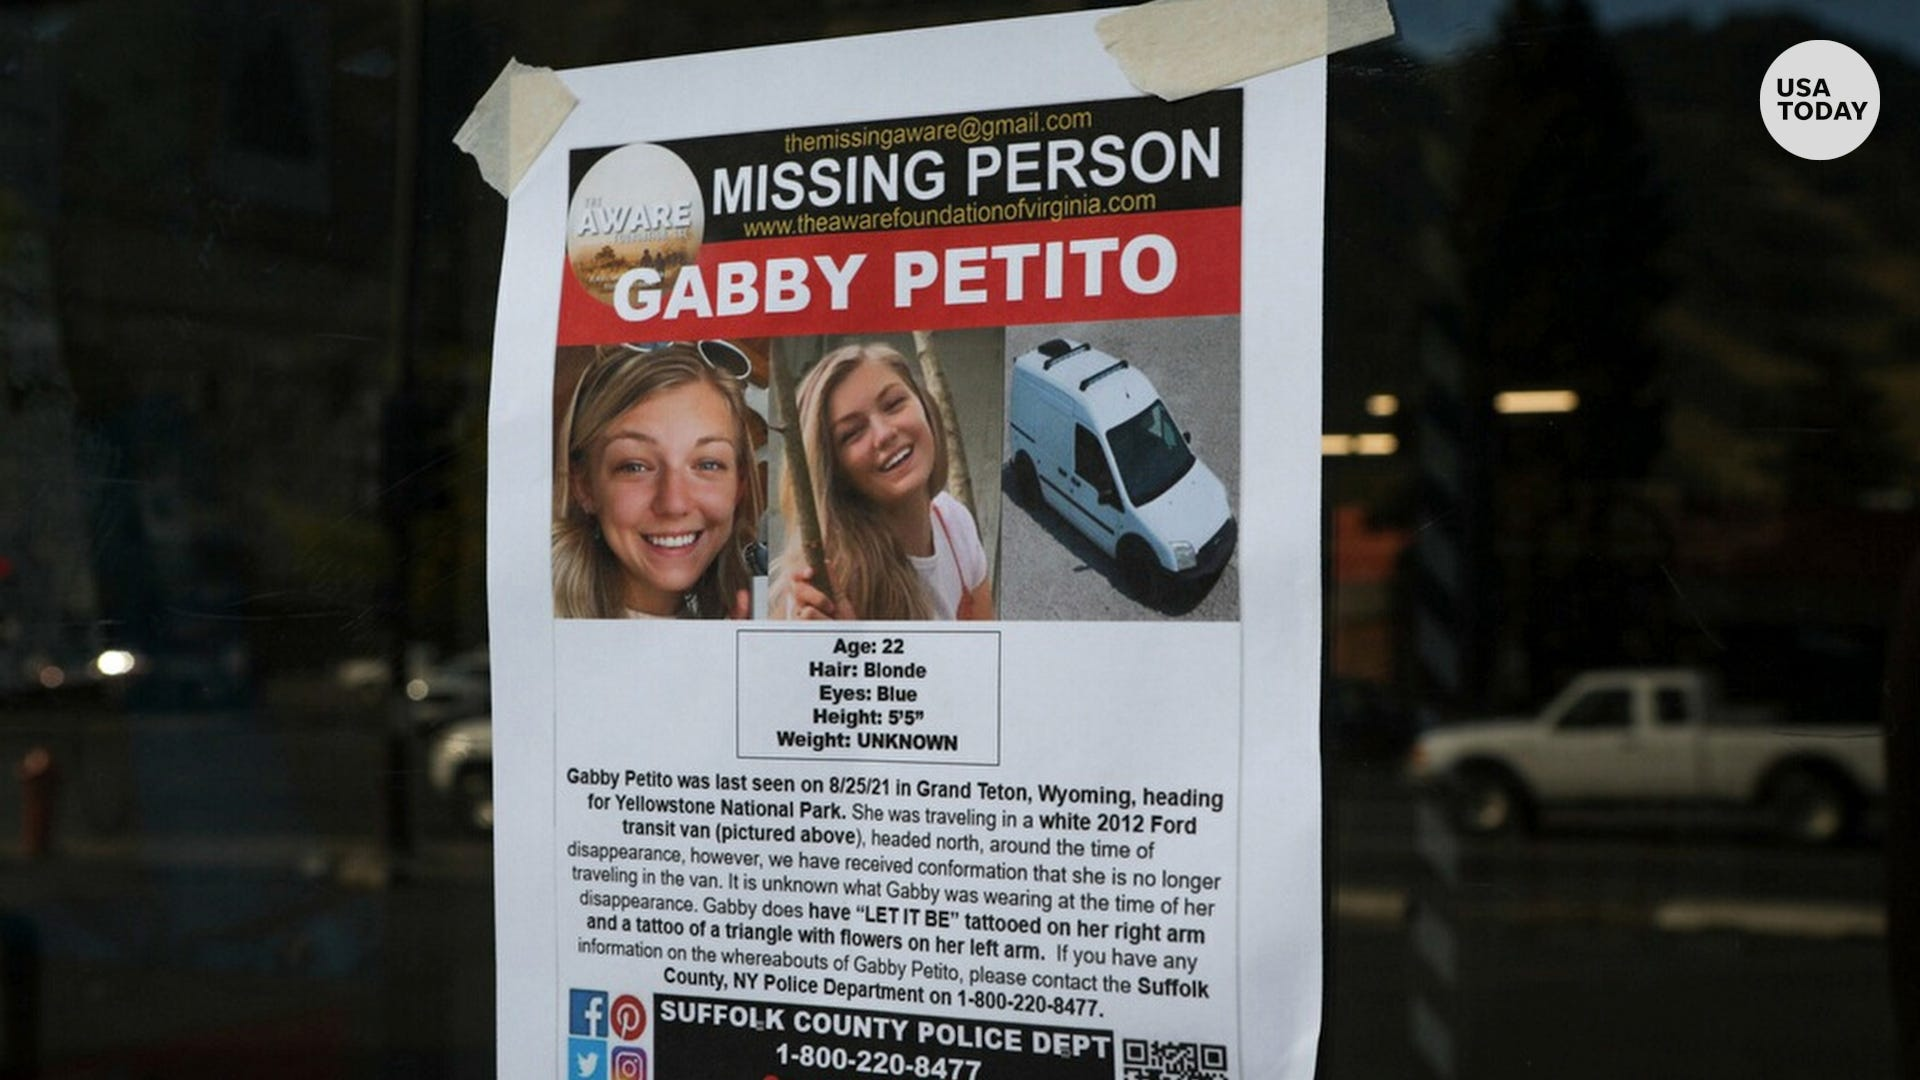 Gabby Petito case: How social media sleuths could influence the investigation